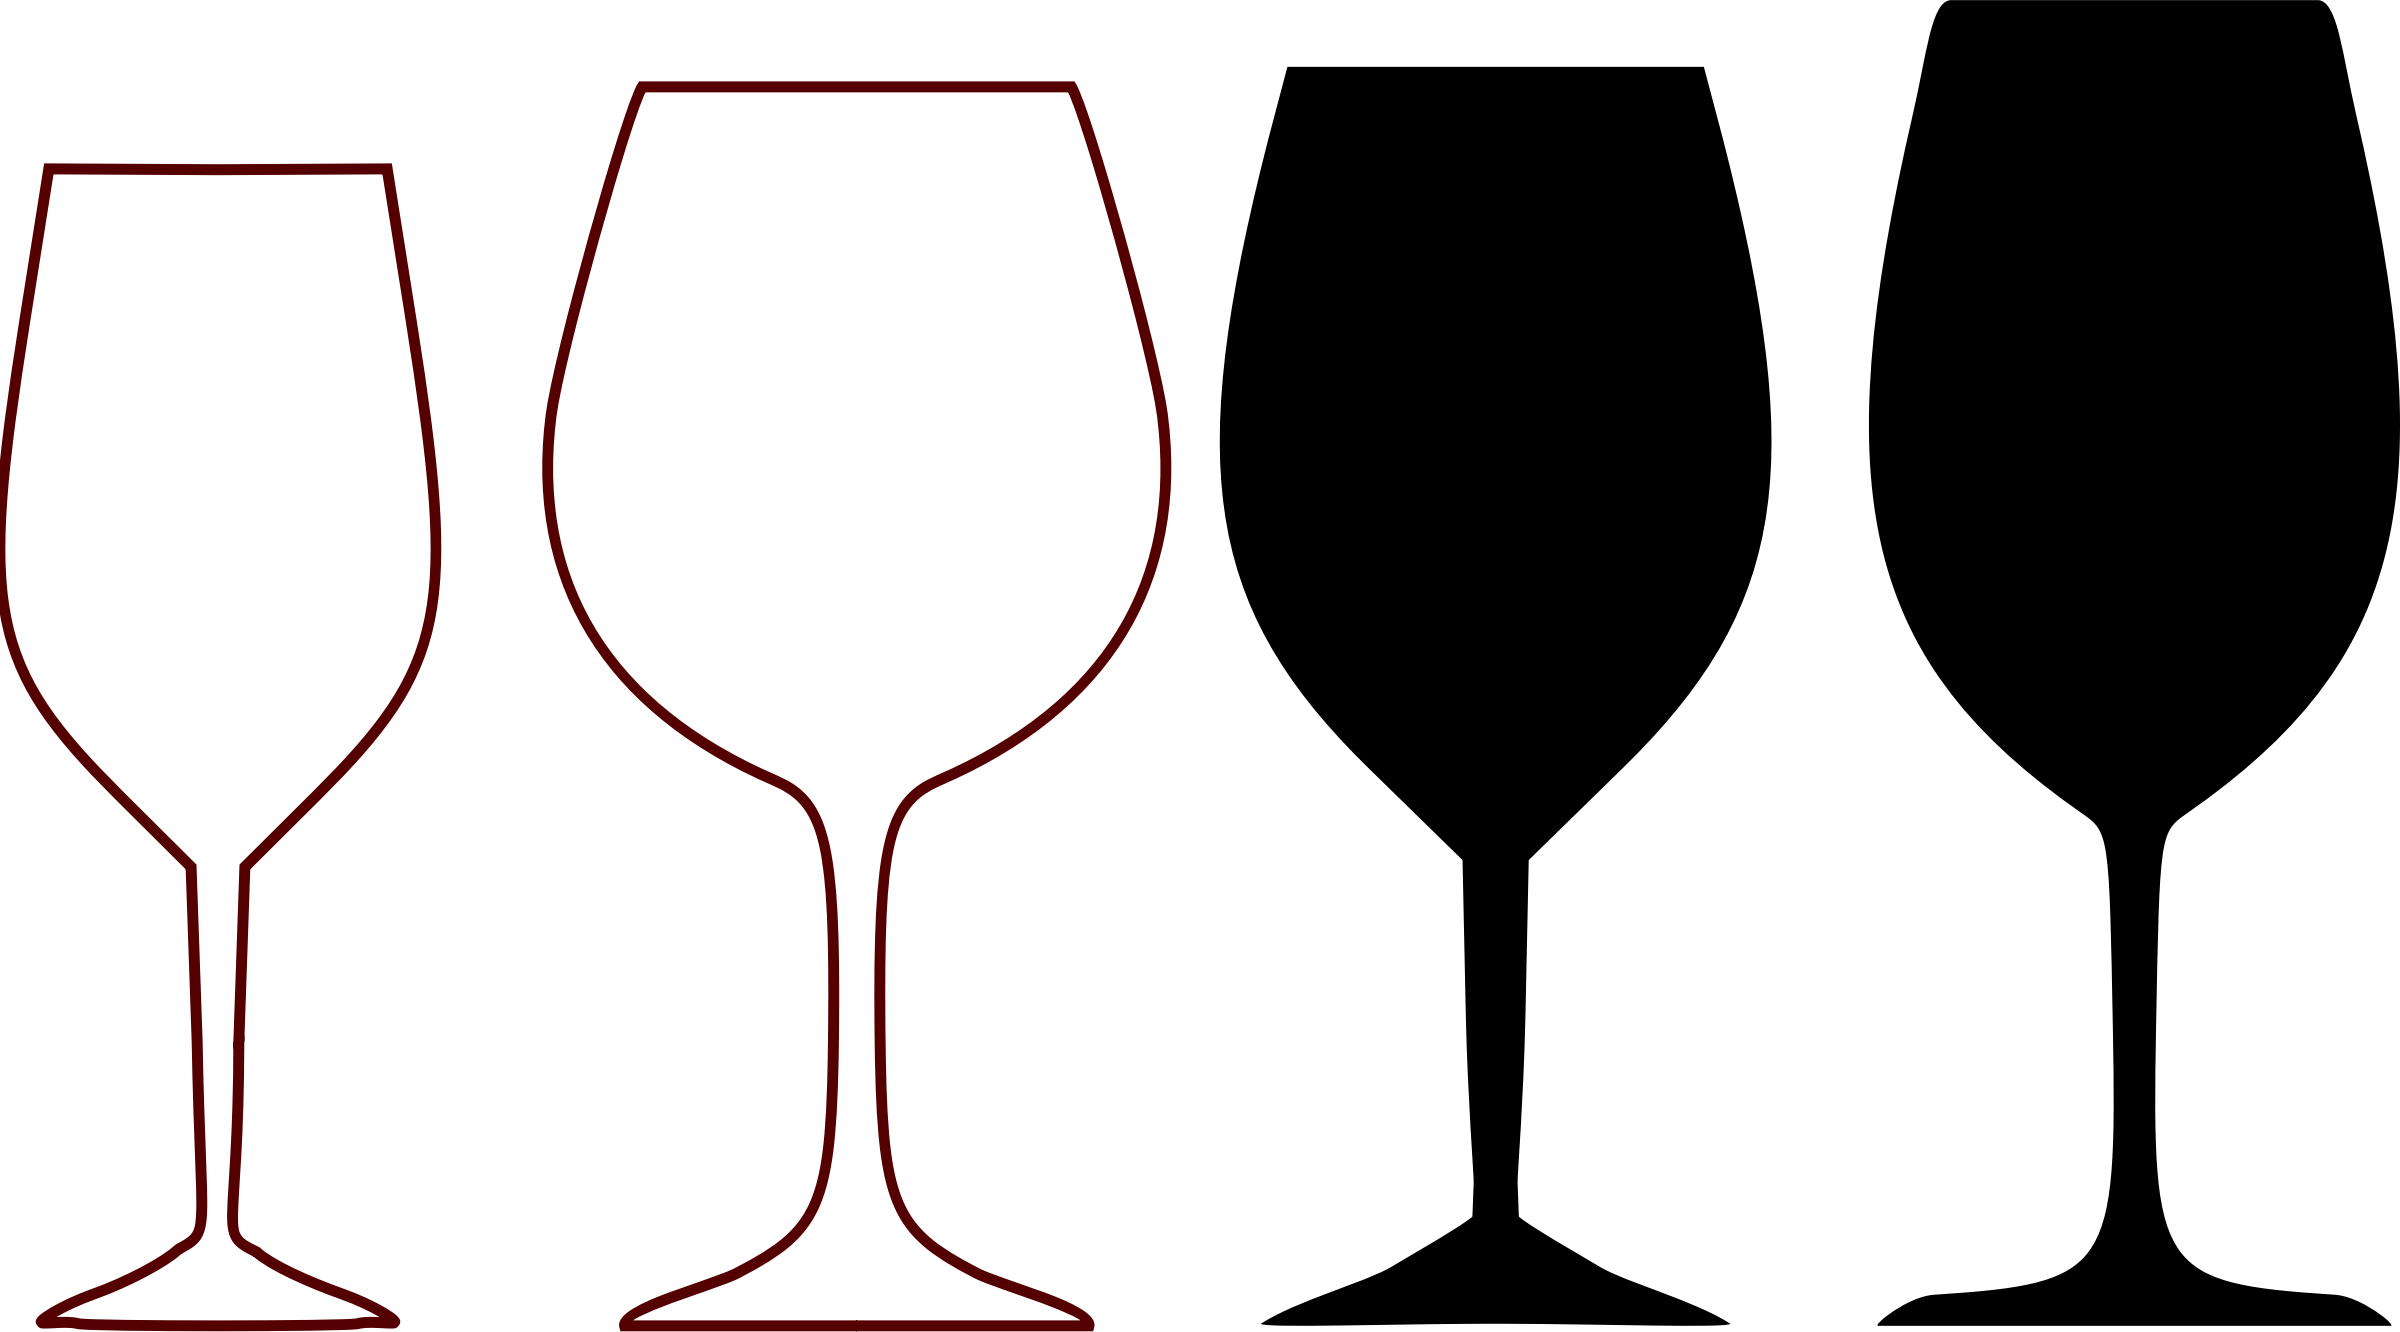 wine glass shapes by @qpad, wine glass shapes and silhouettes., on.